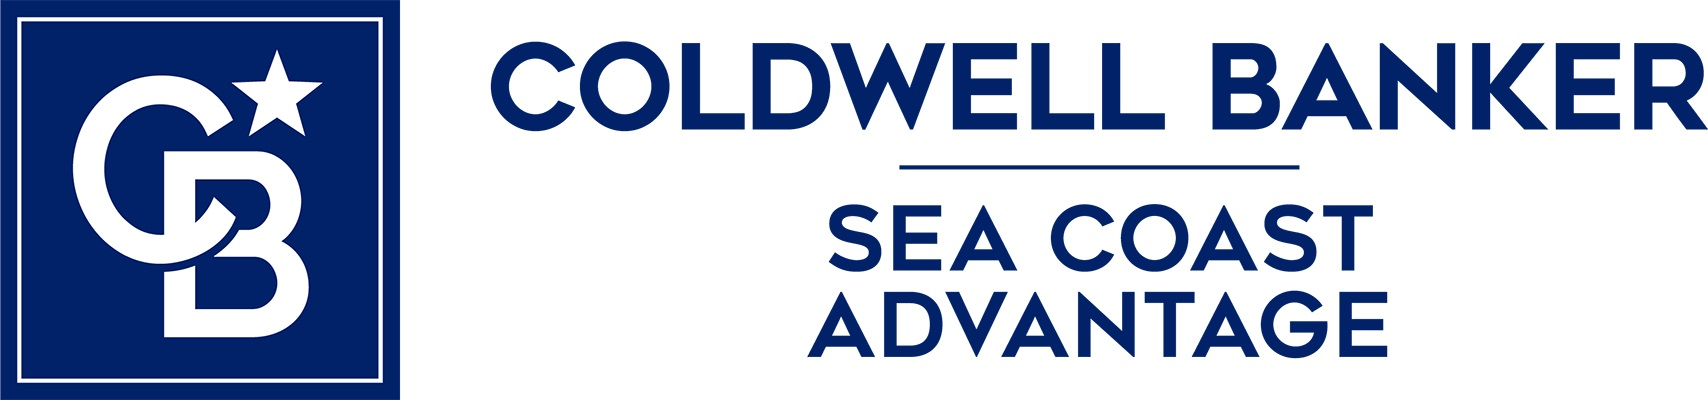 Matt Jones - Coldwell Banker Sea Coast Advantage Realty Logo